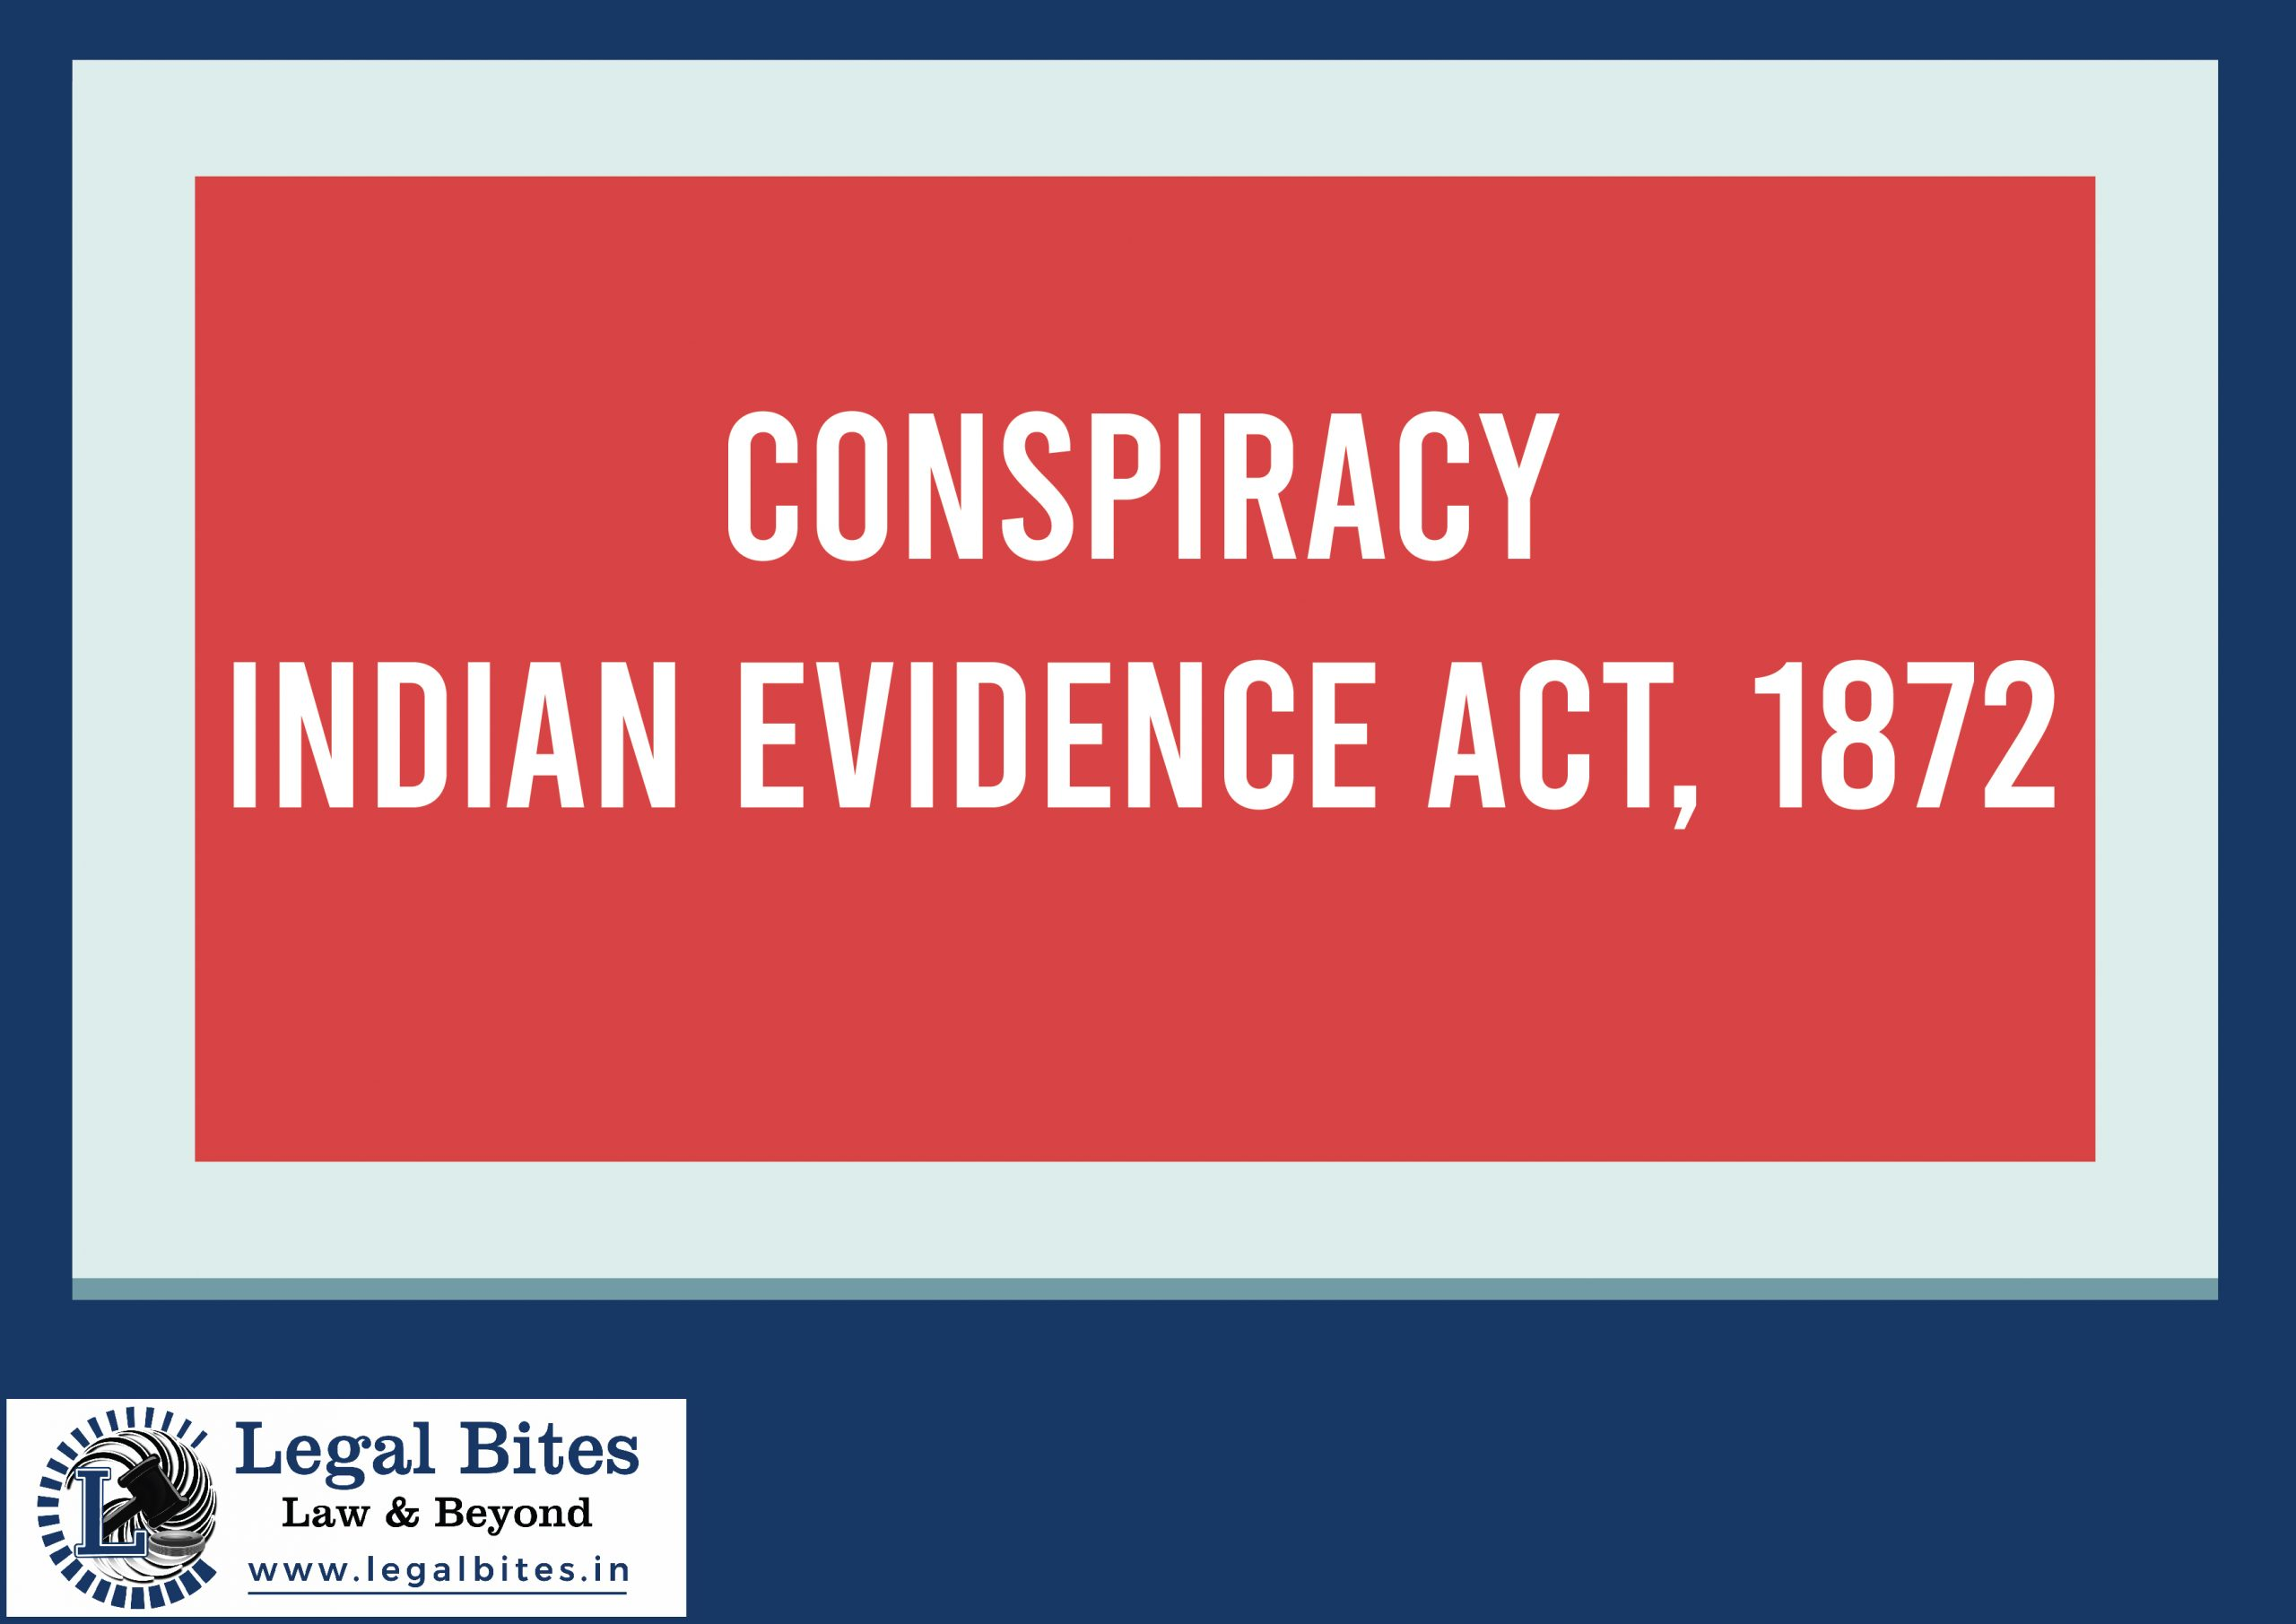 Conspiracy under the Indian Evidence Act